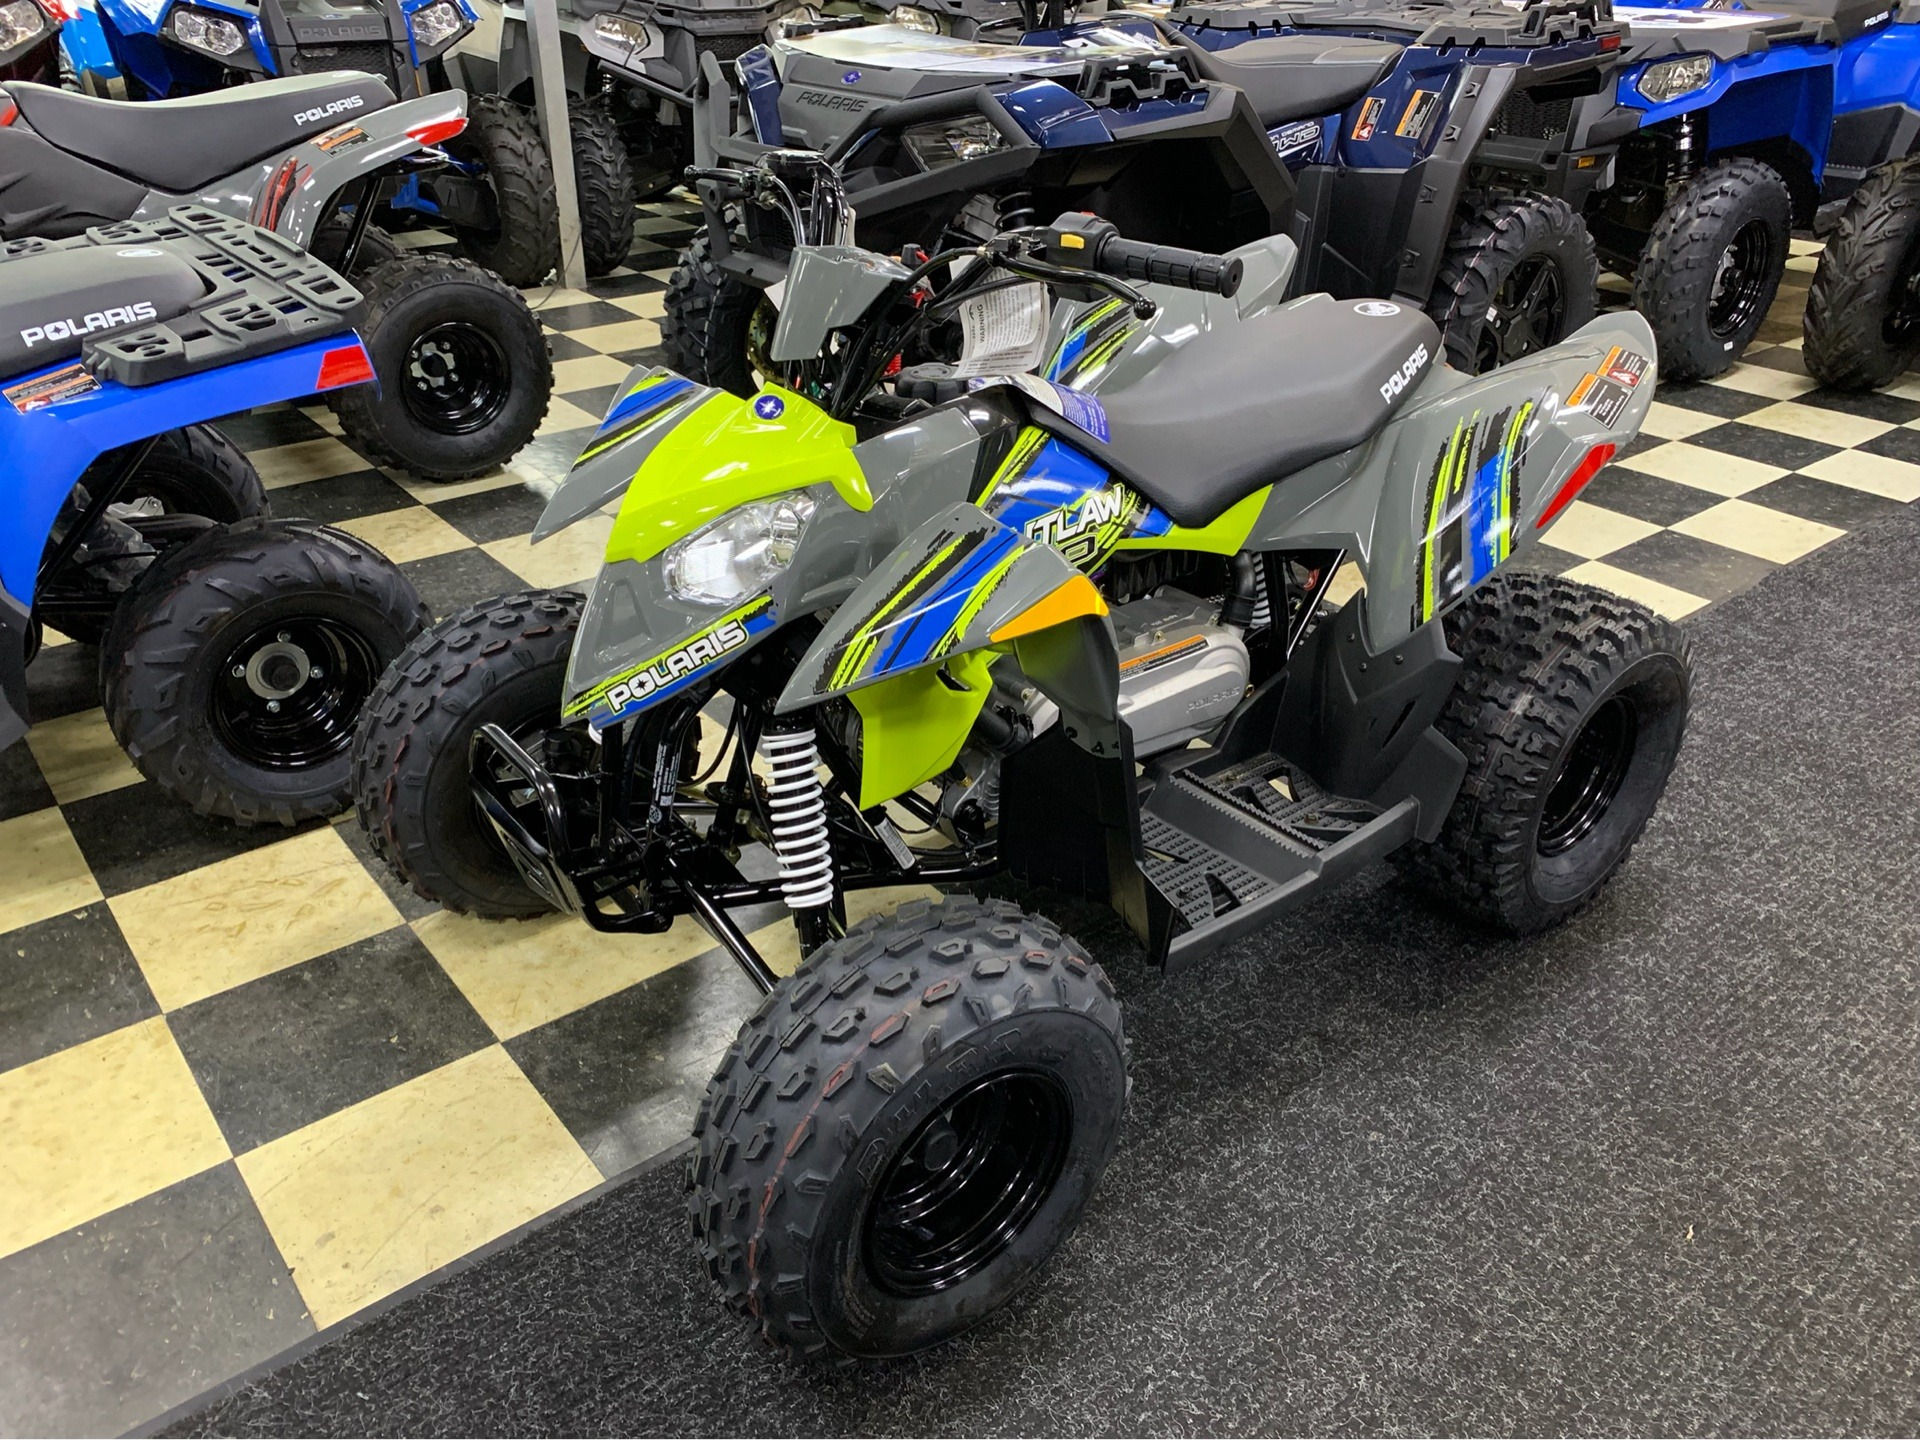 2019 Polaris Outlaw 110 in Huntington Station, New York